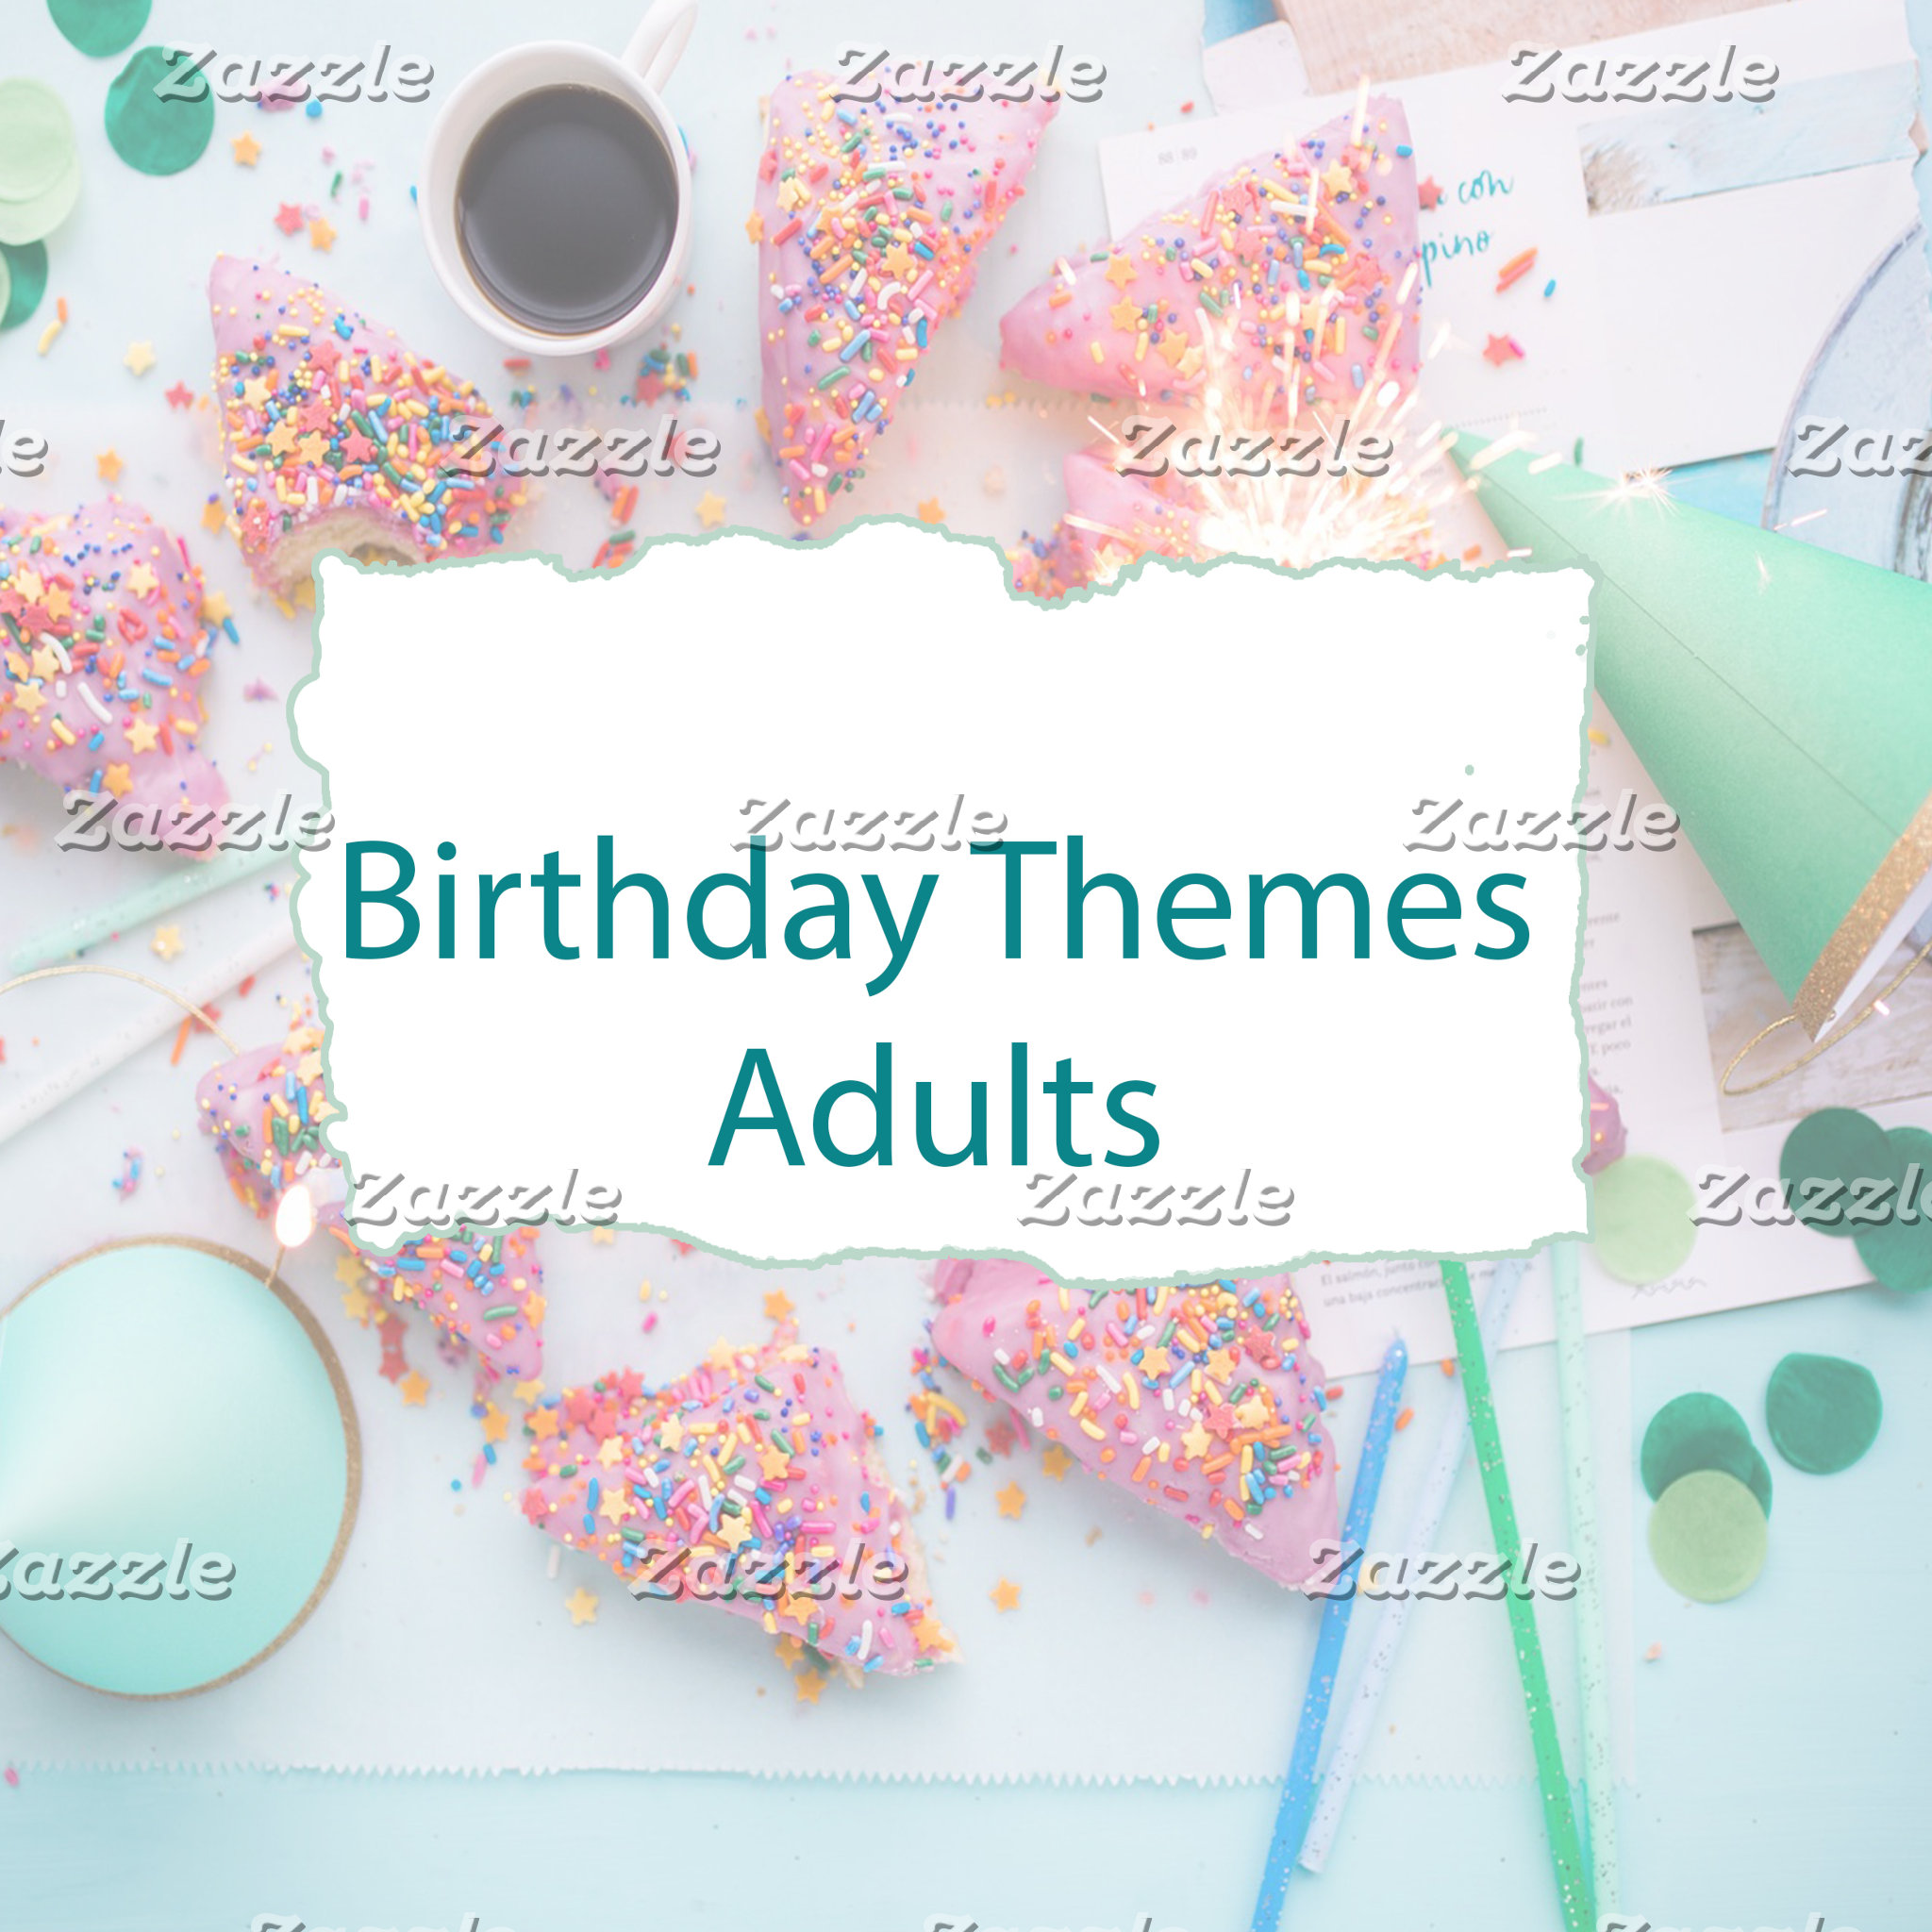 Birthday Themes Adults